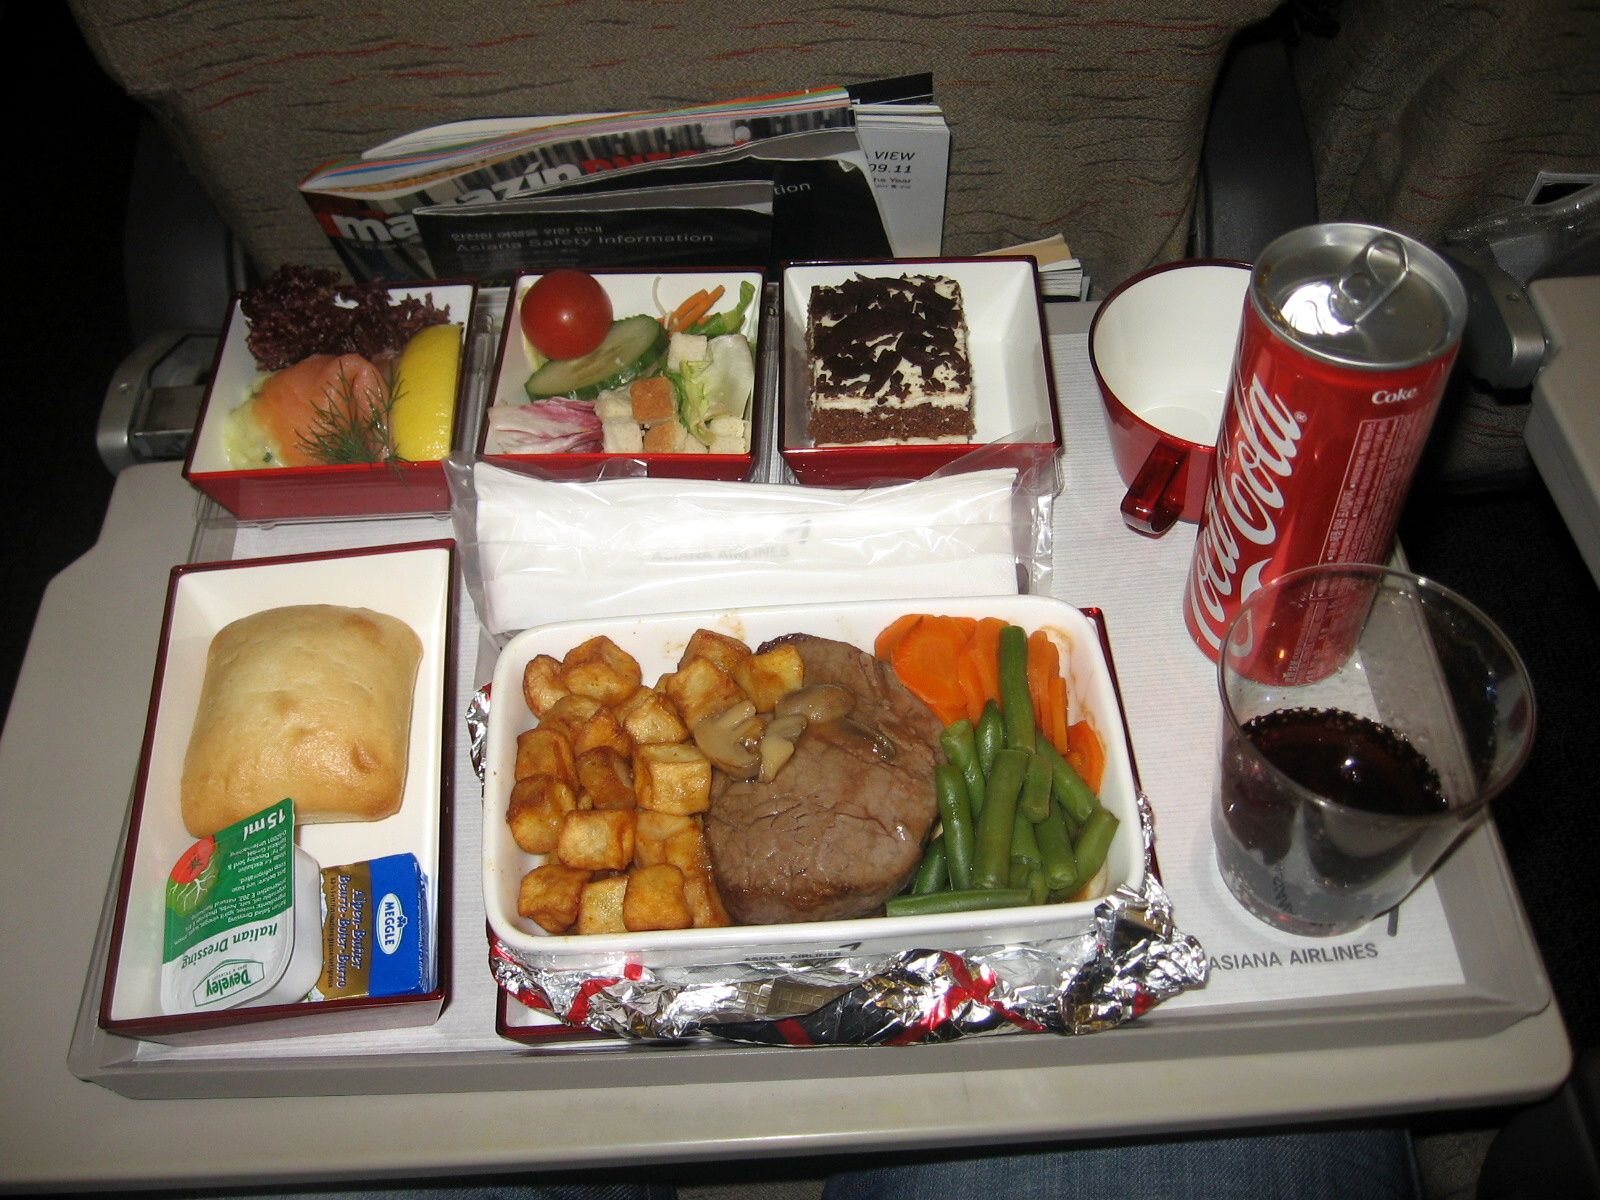 Asiana Airlines - Dinner